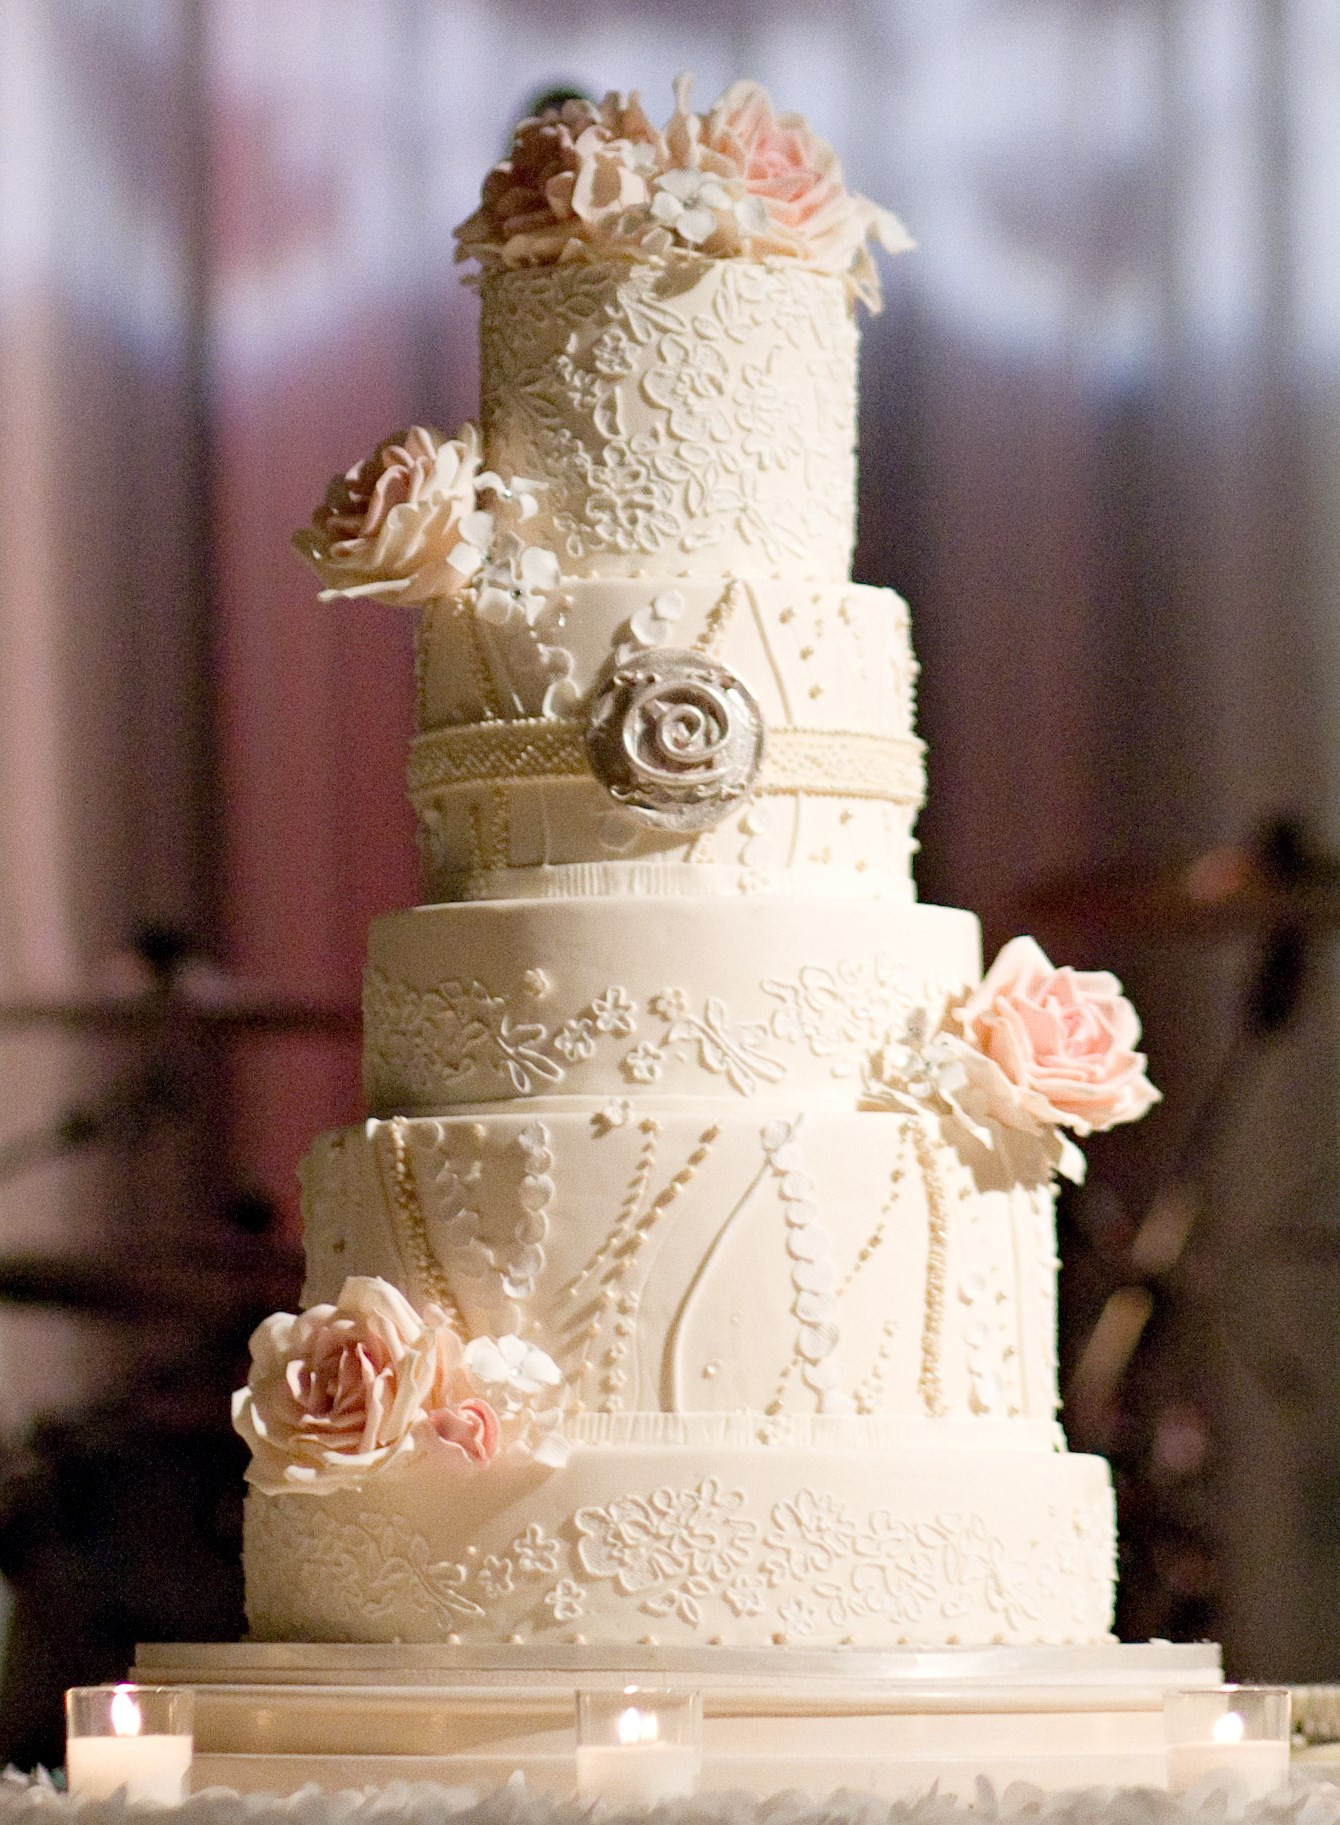 Wedding Cakes Portland 20 Of the Best Ideas for Wedding Cakes Gallery Laurie Clarke Cakes